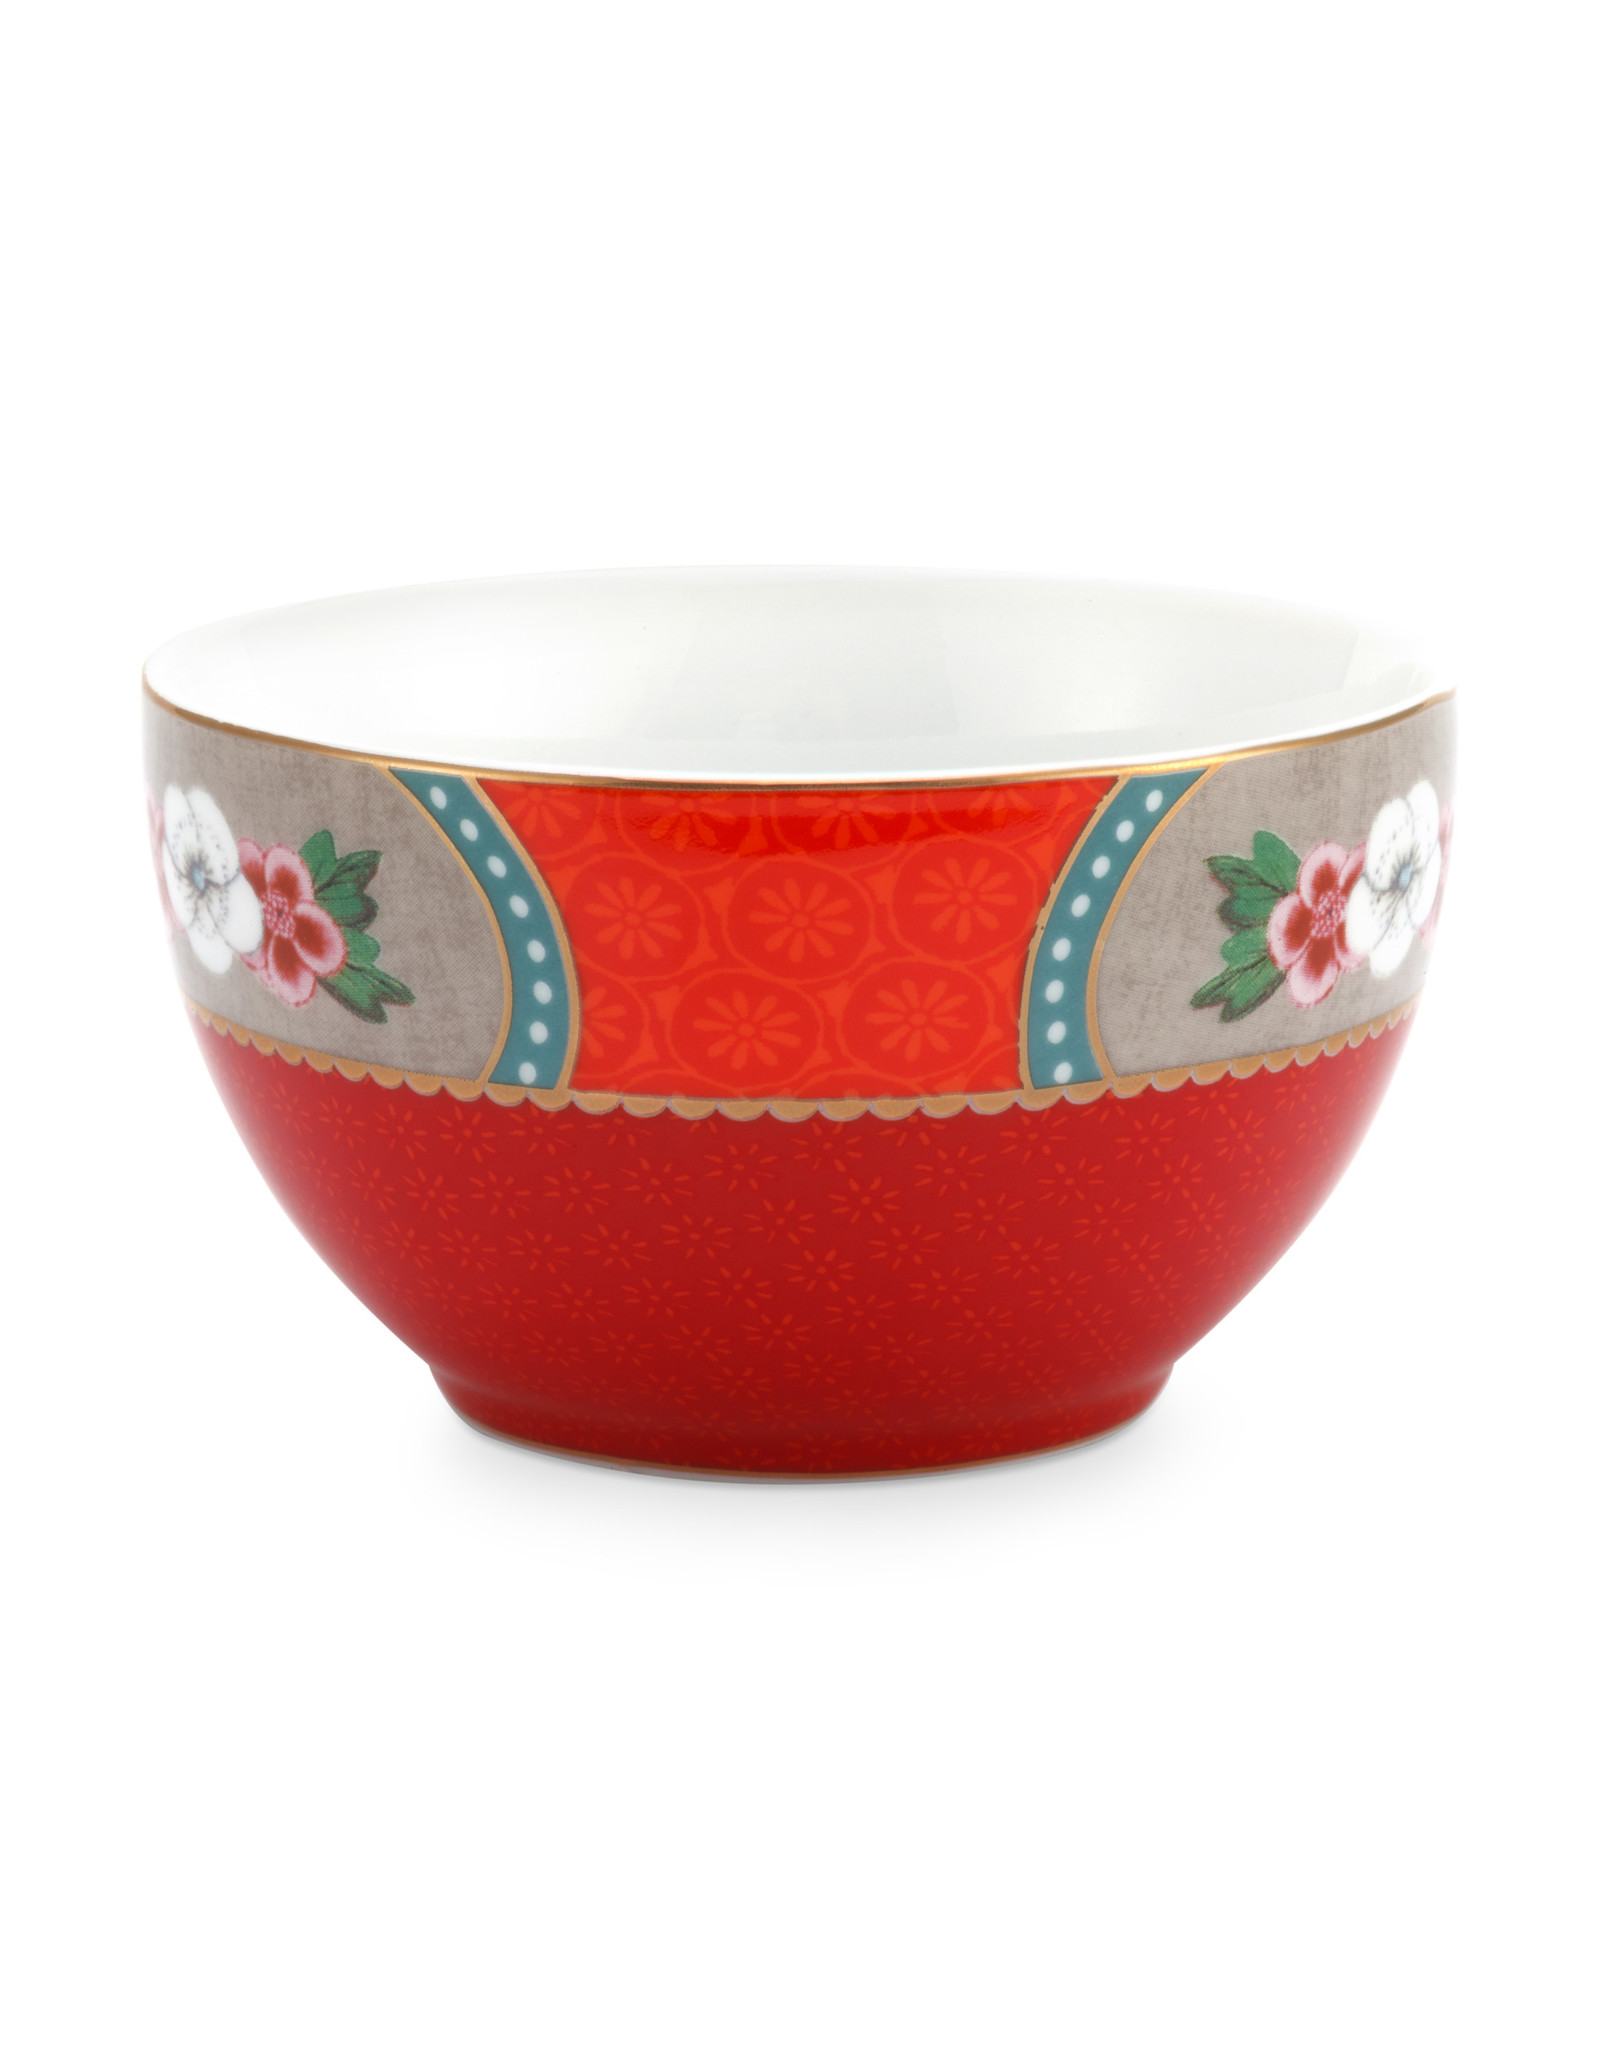 pip studio Bowl Star Flower Red 9.5cm